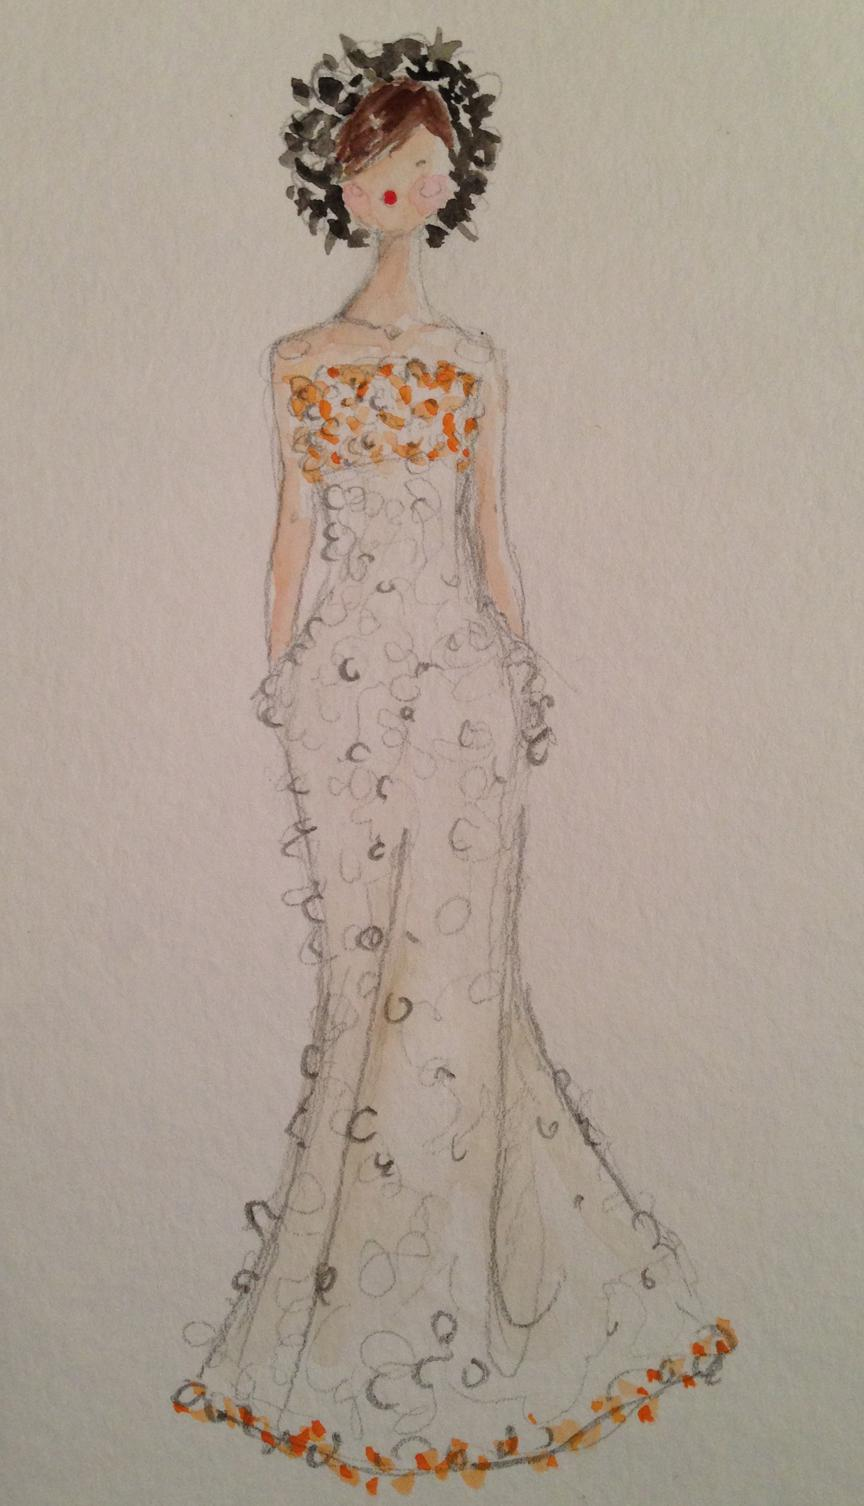 FINAL WATERCOLORS! - image 6 - student project